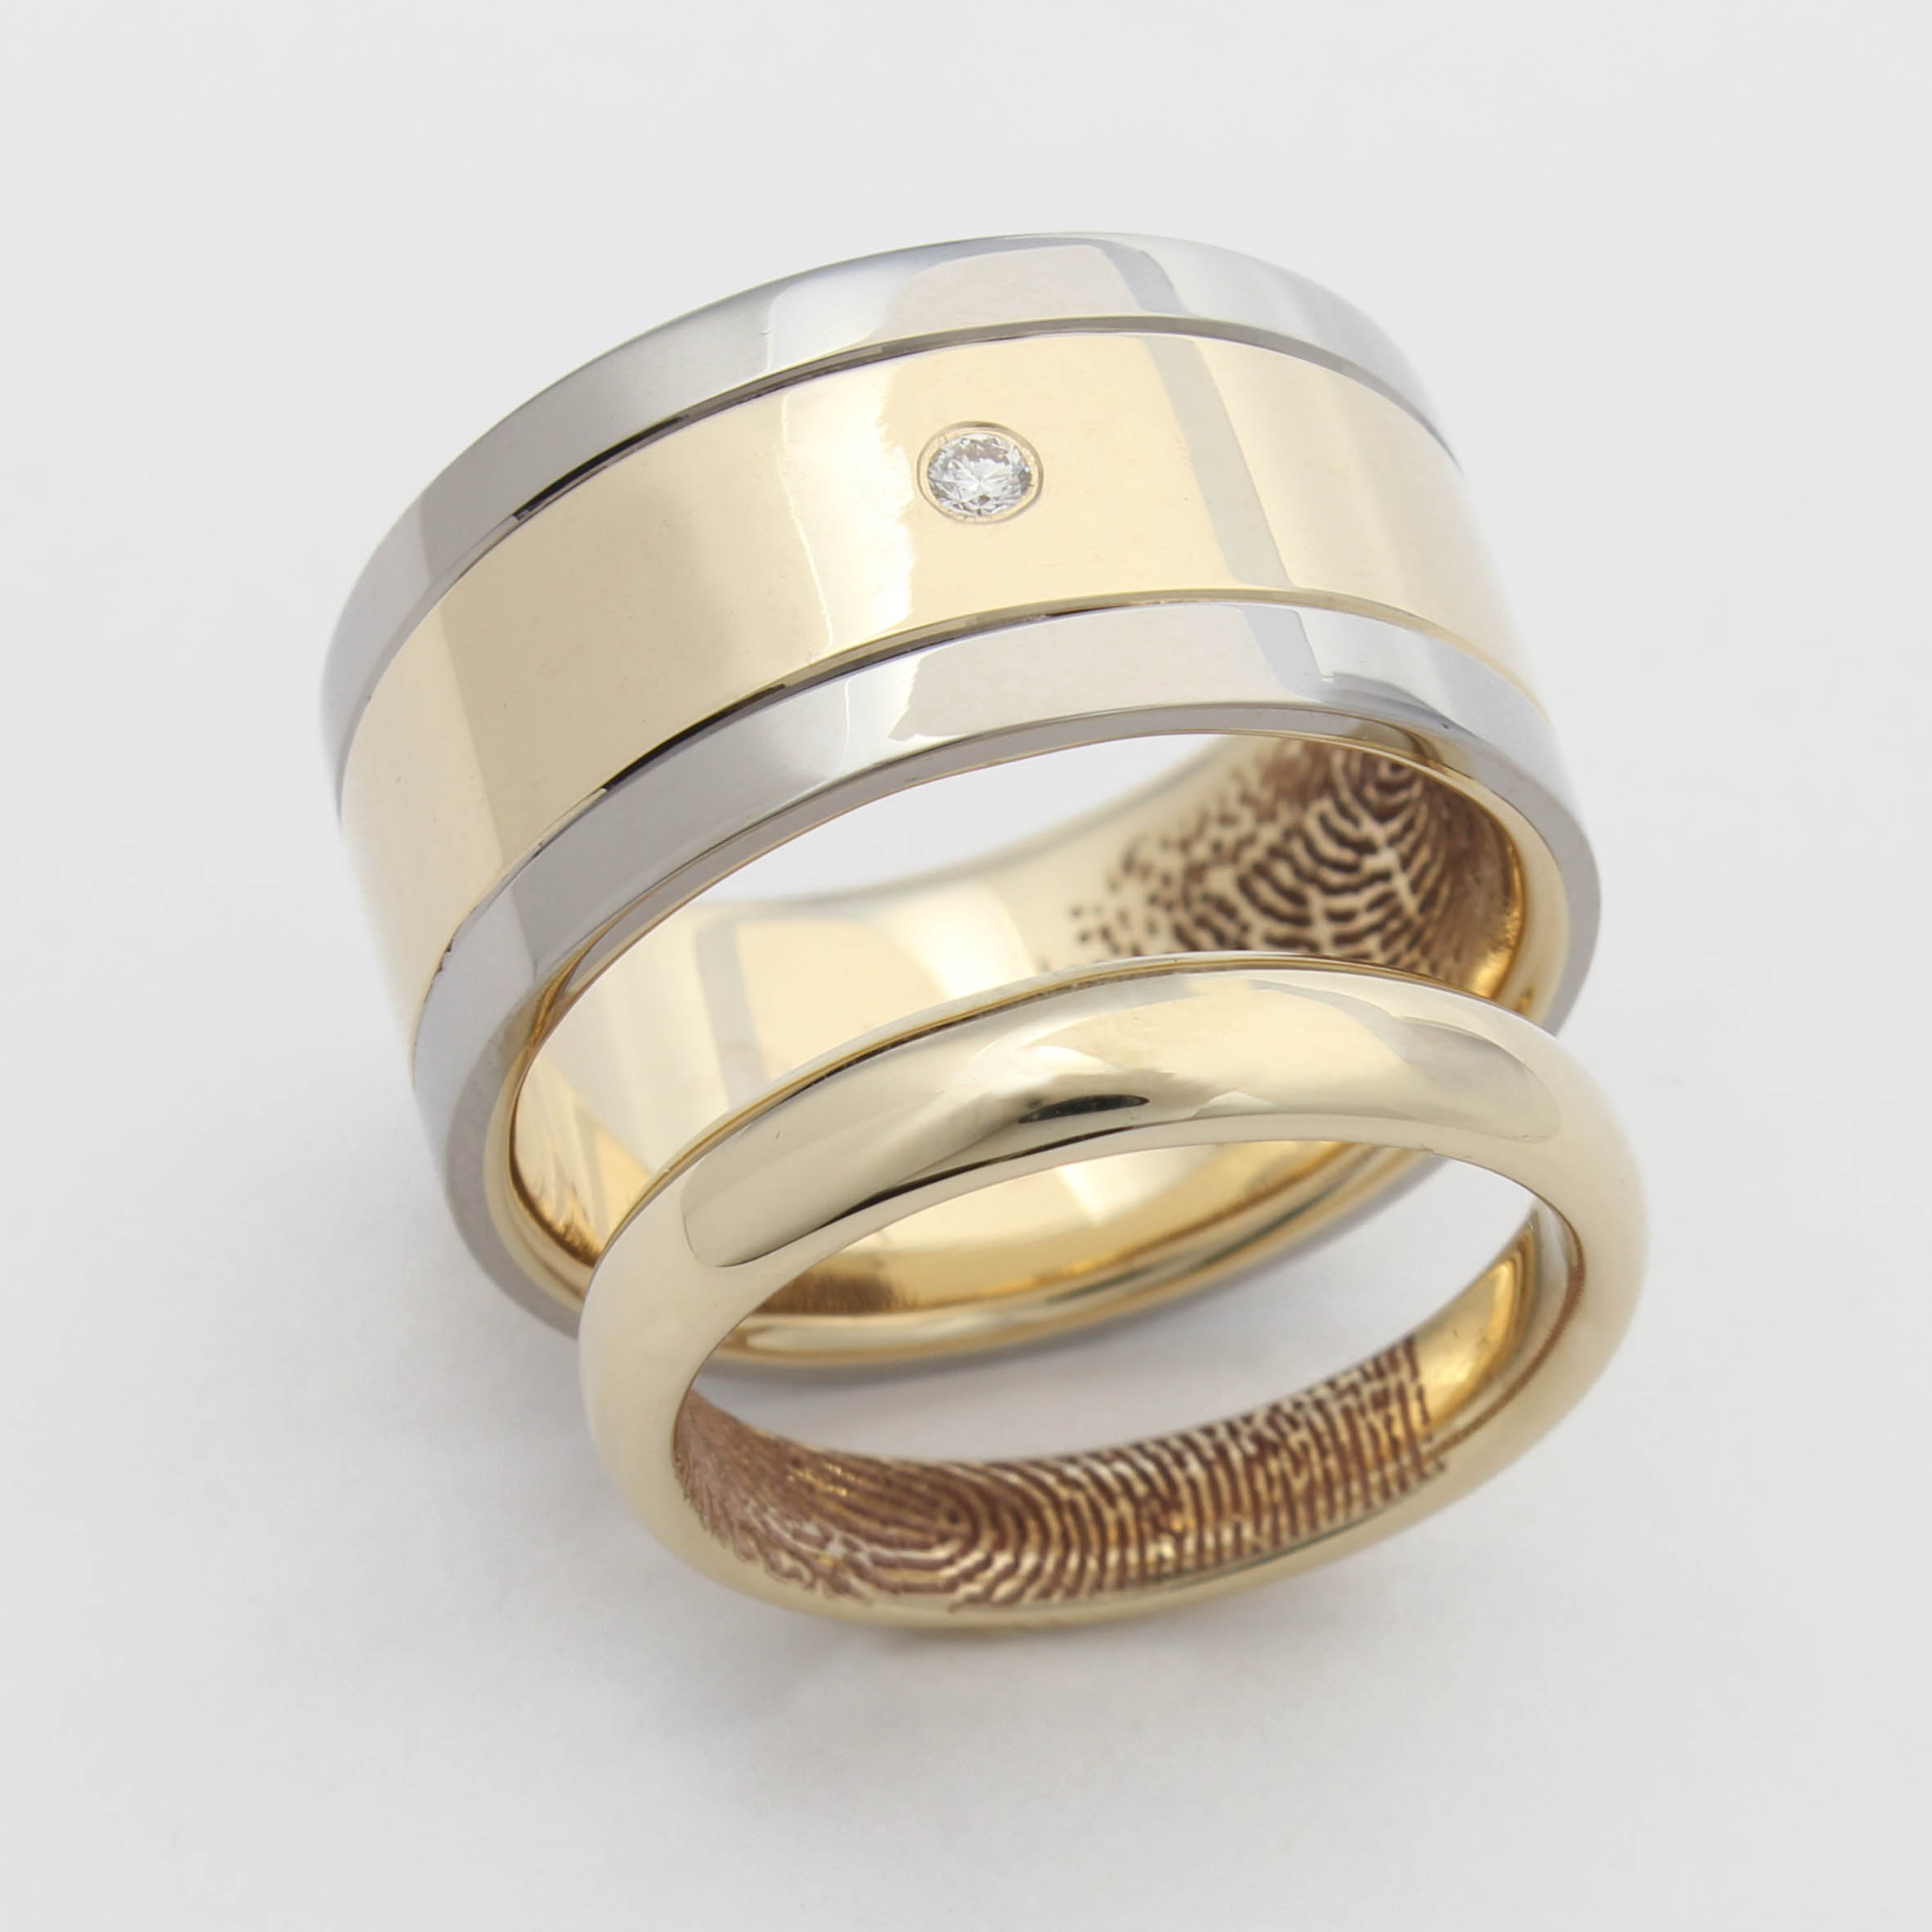 Remodelled family jewellery and two tone wedding ring